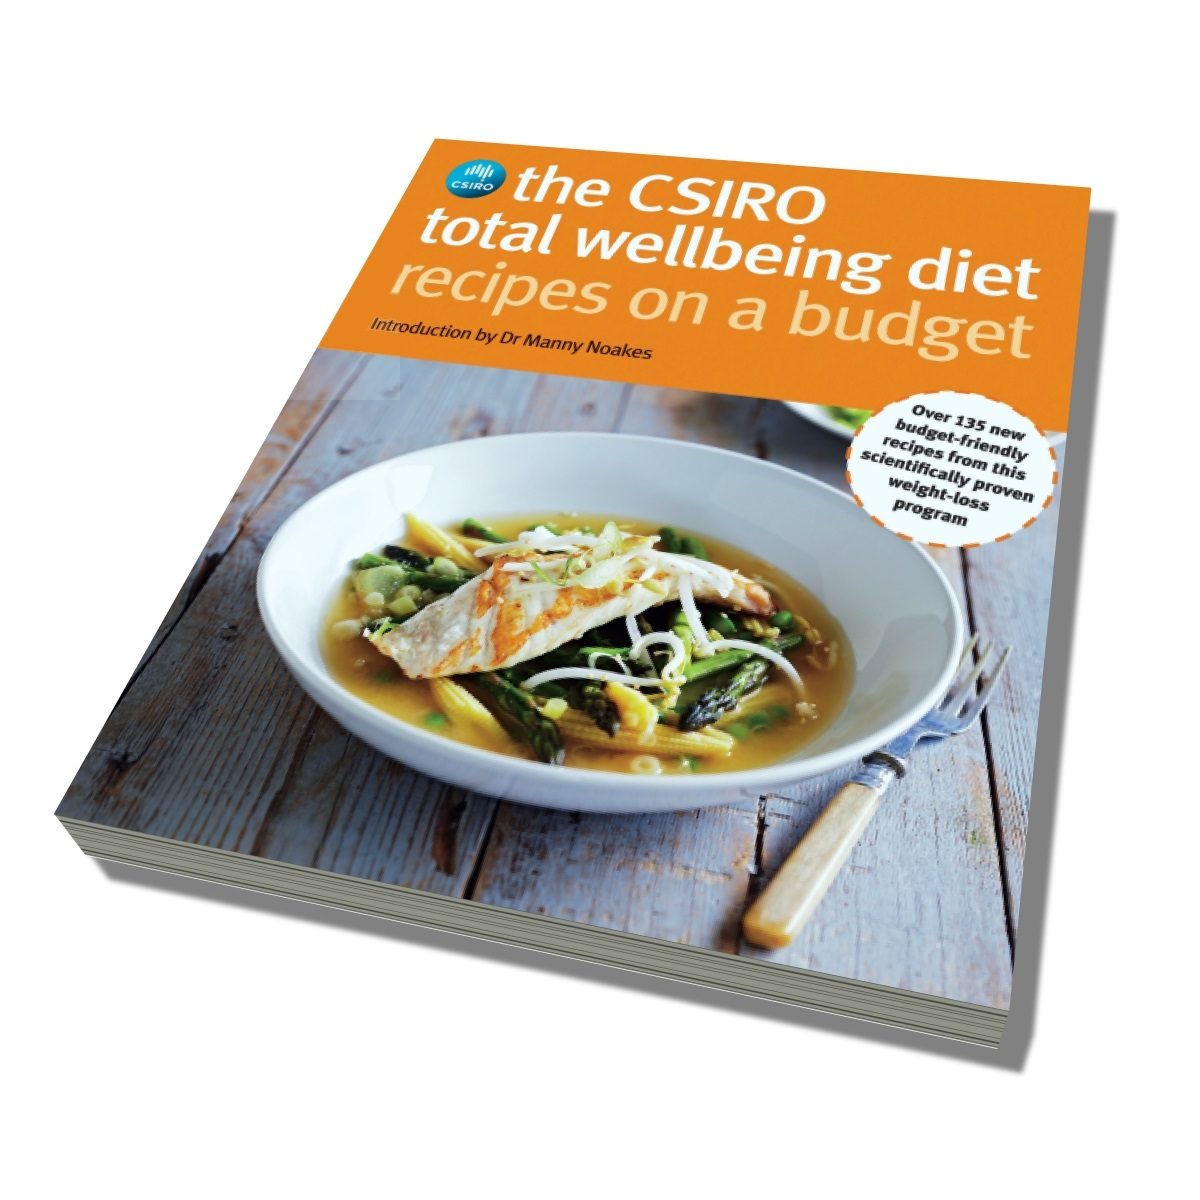 Recipes on a budget: the latest from our Total Wellbeing Diet series.